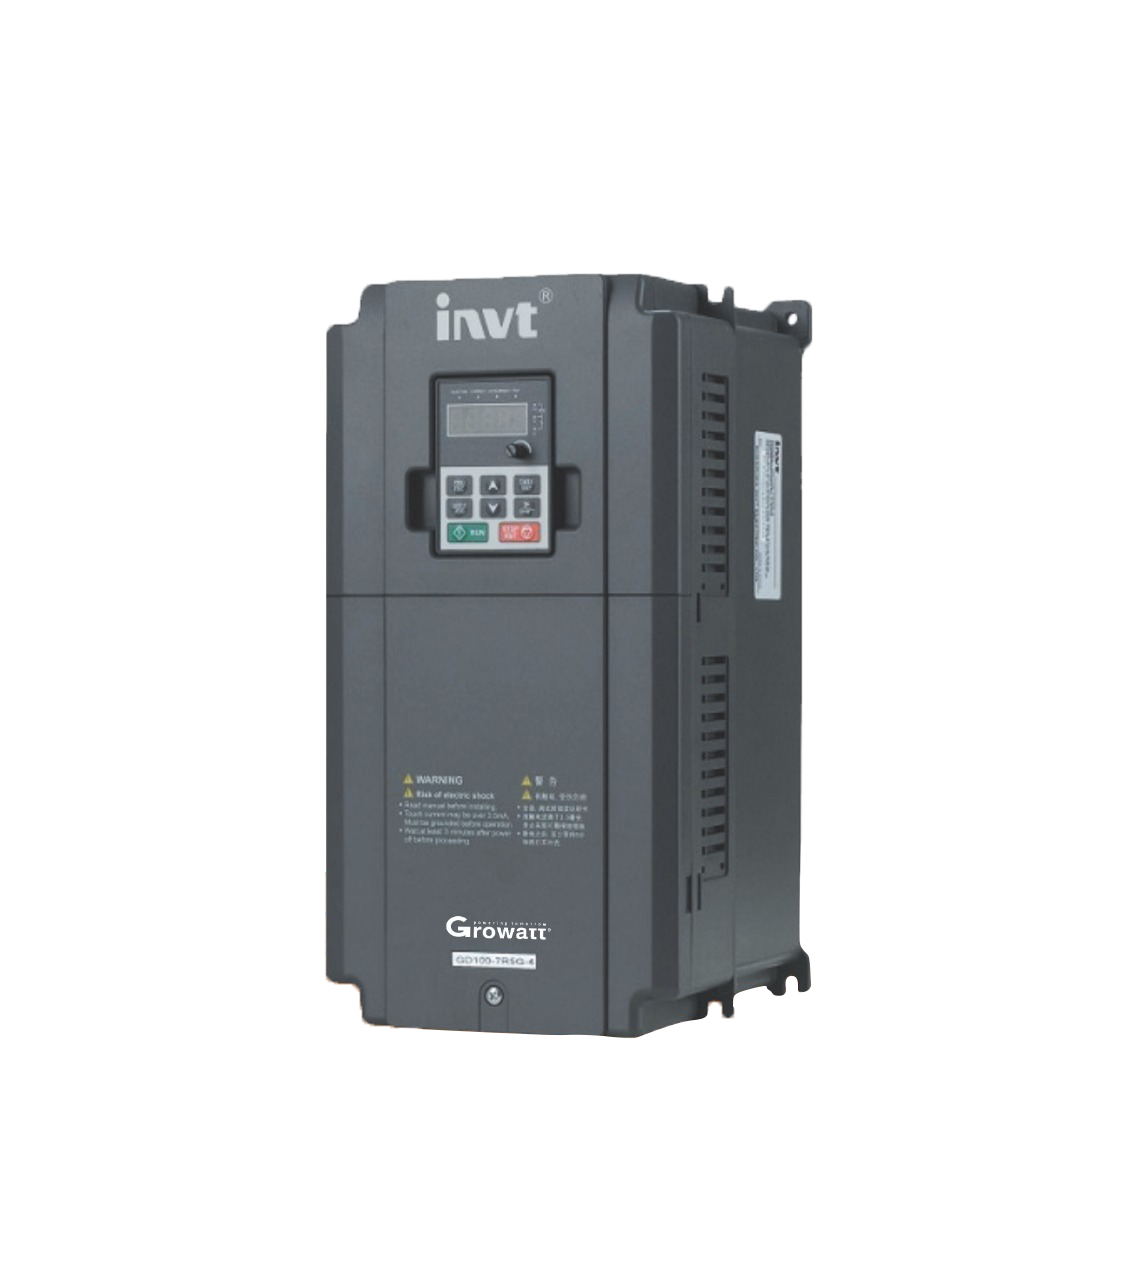 GD100-037G-4-PV GrowattPK inverter